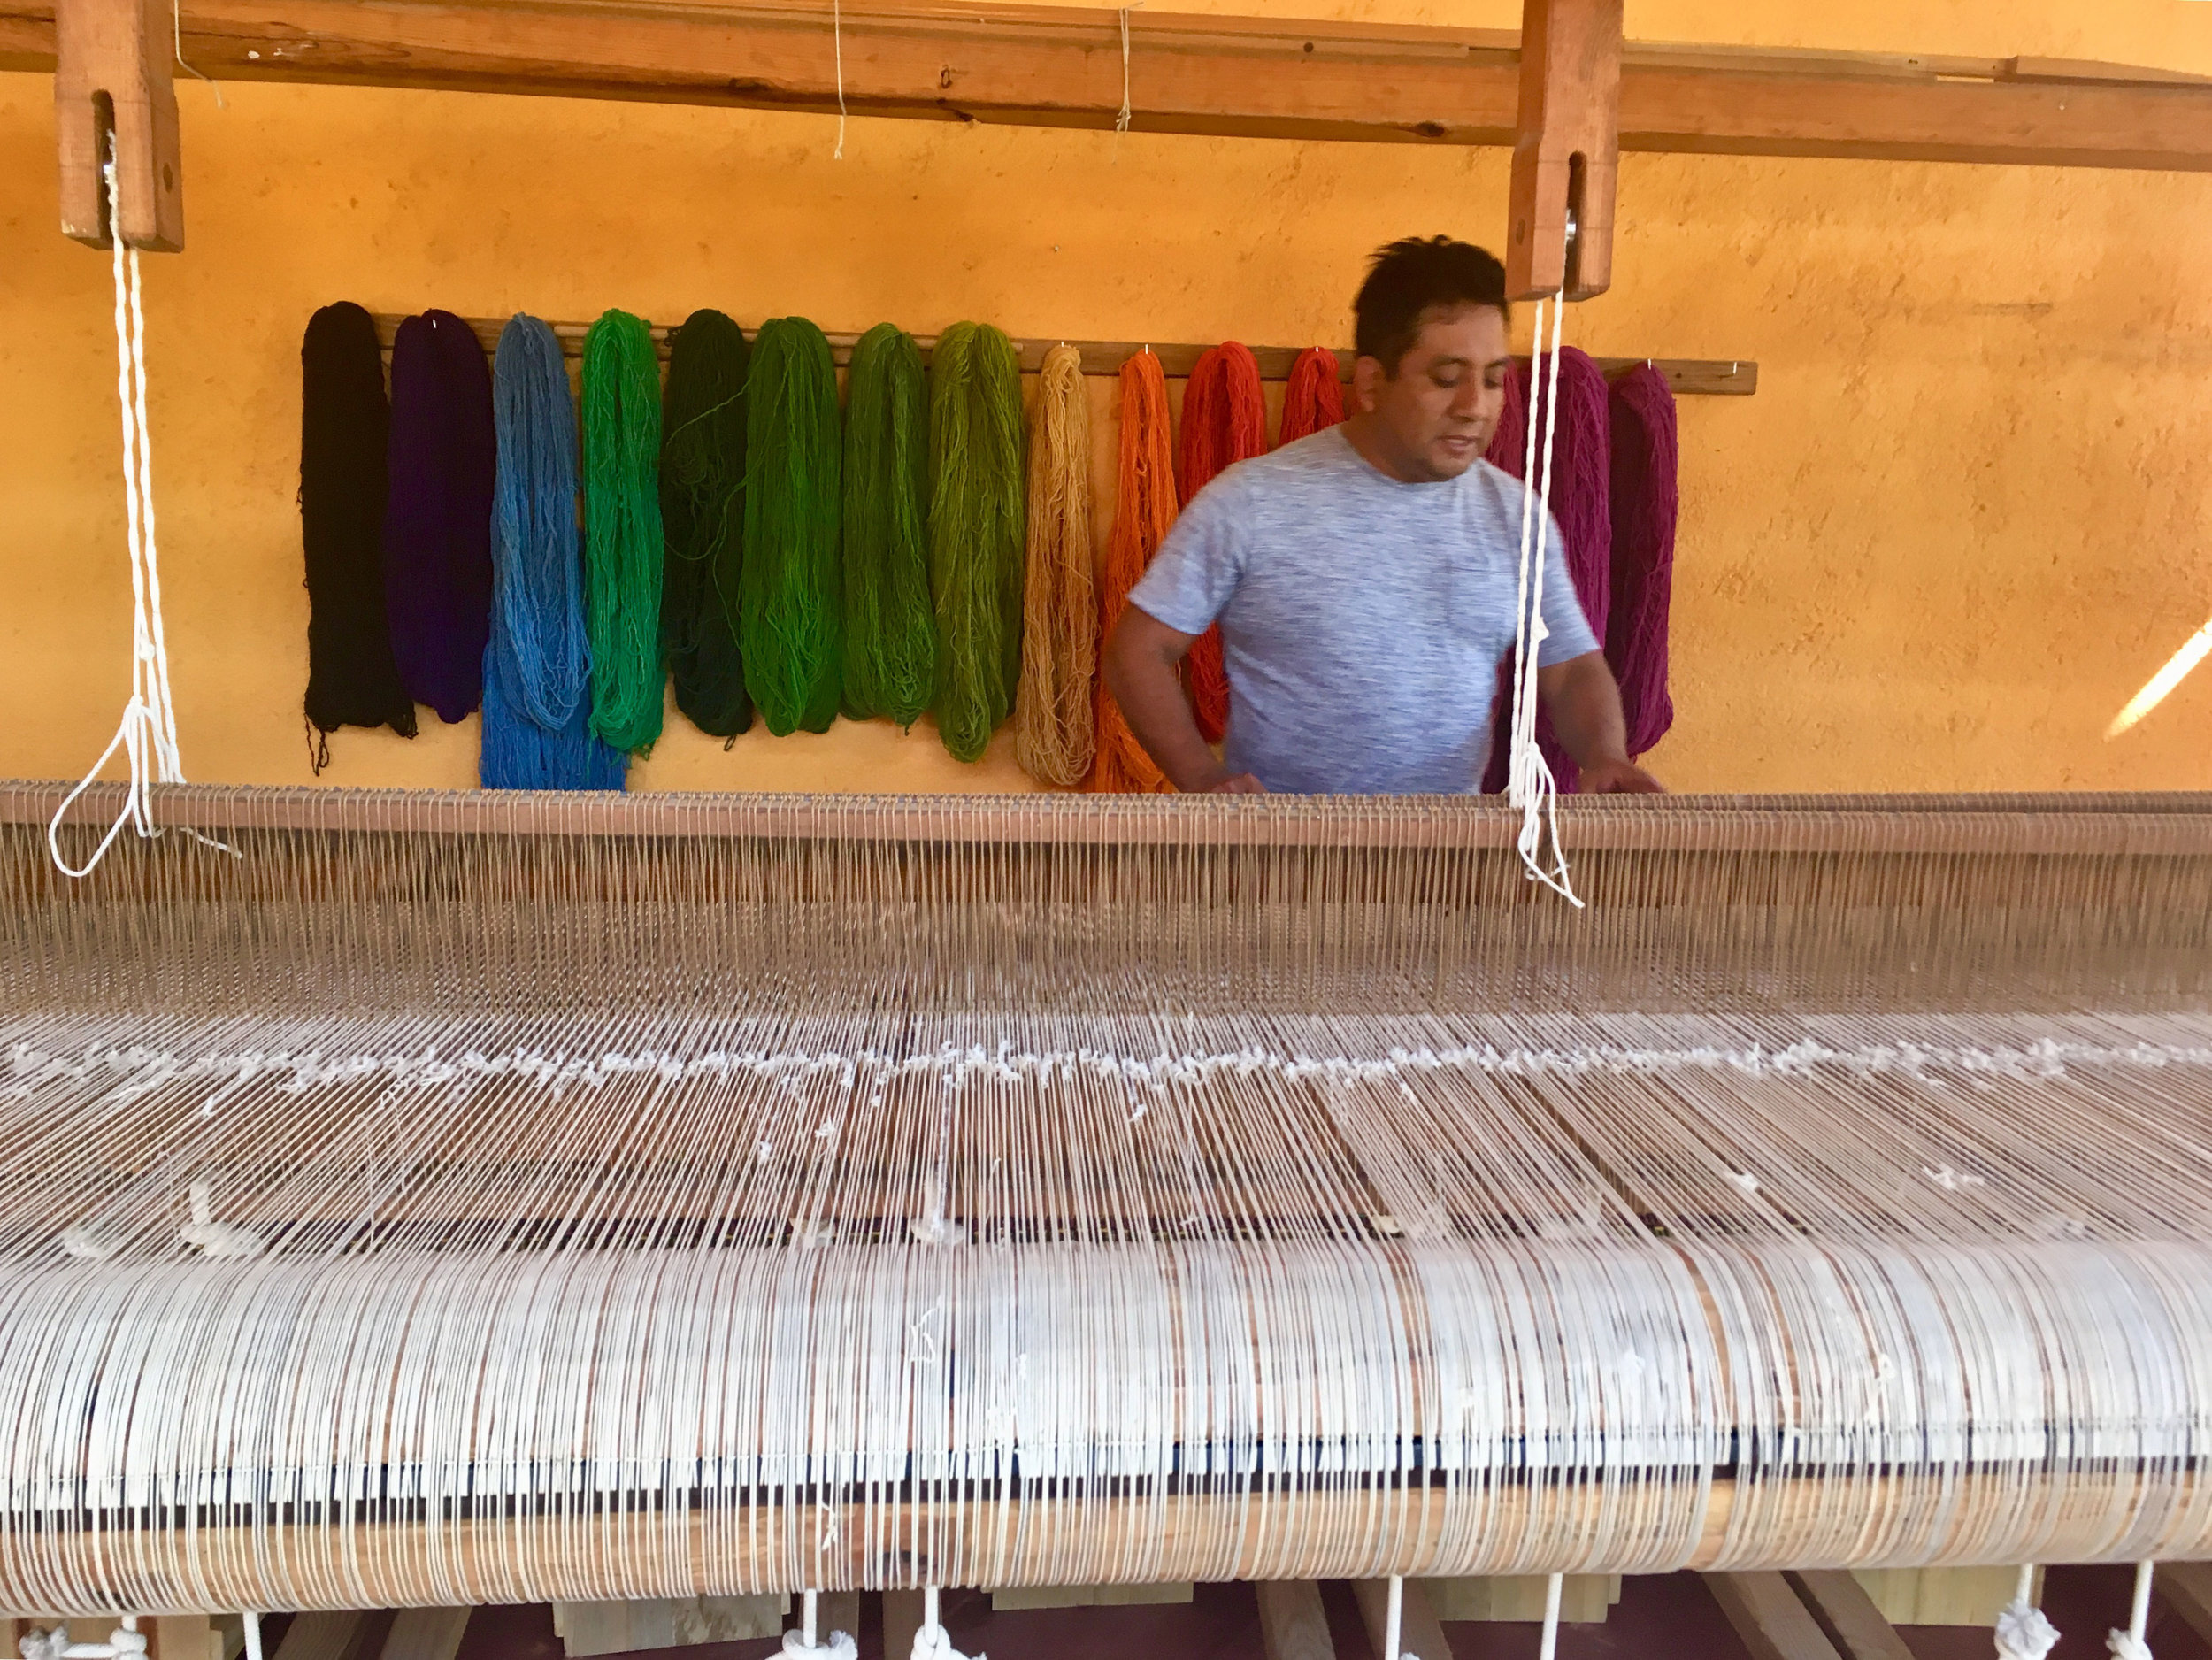 Nelson weaving on a foot pedal loom.